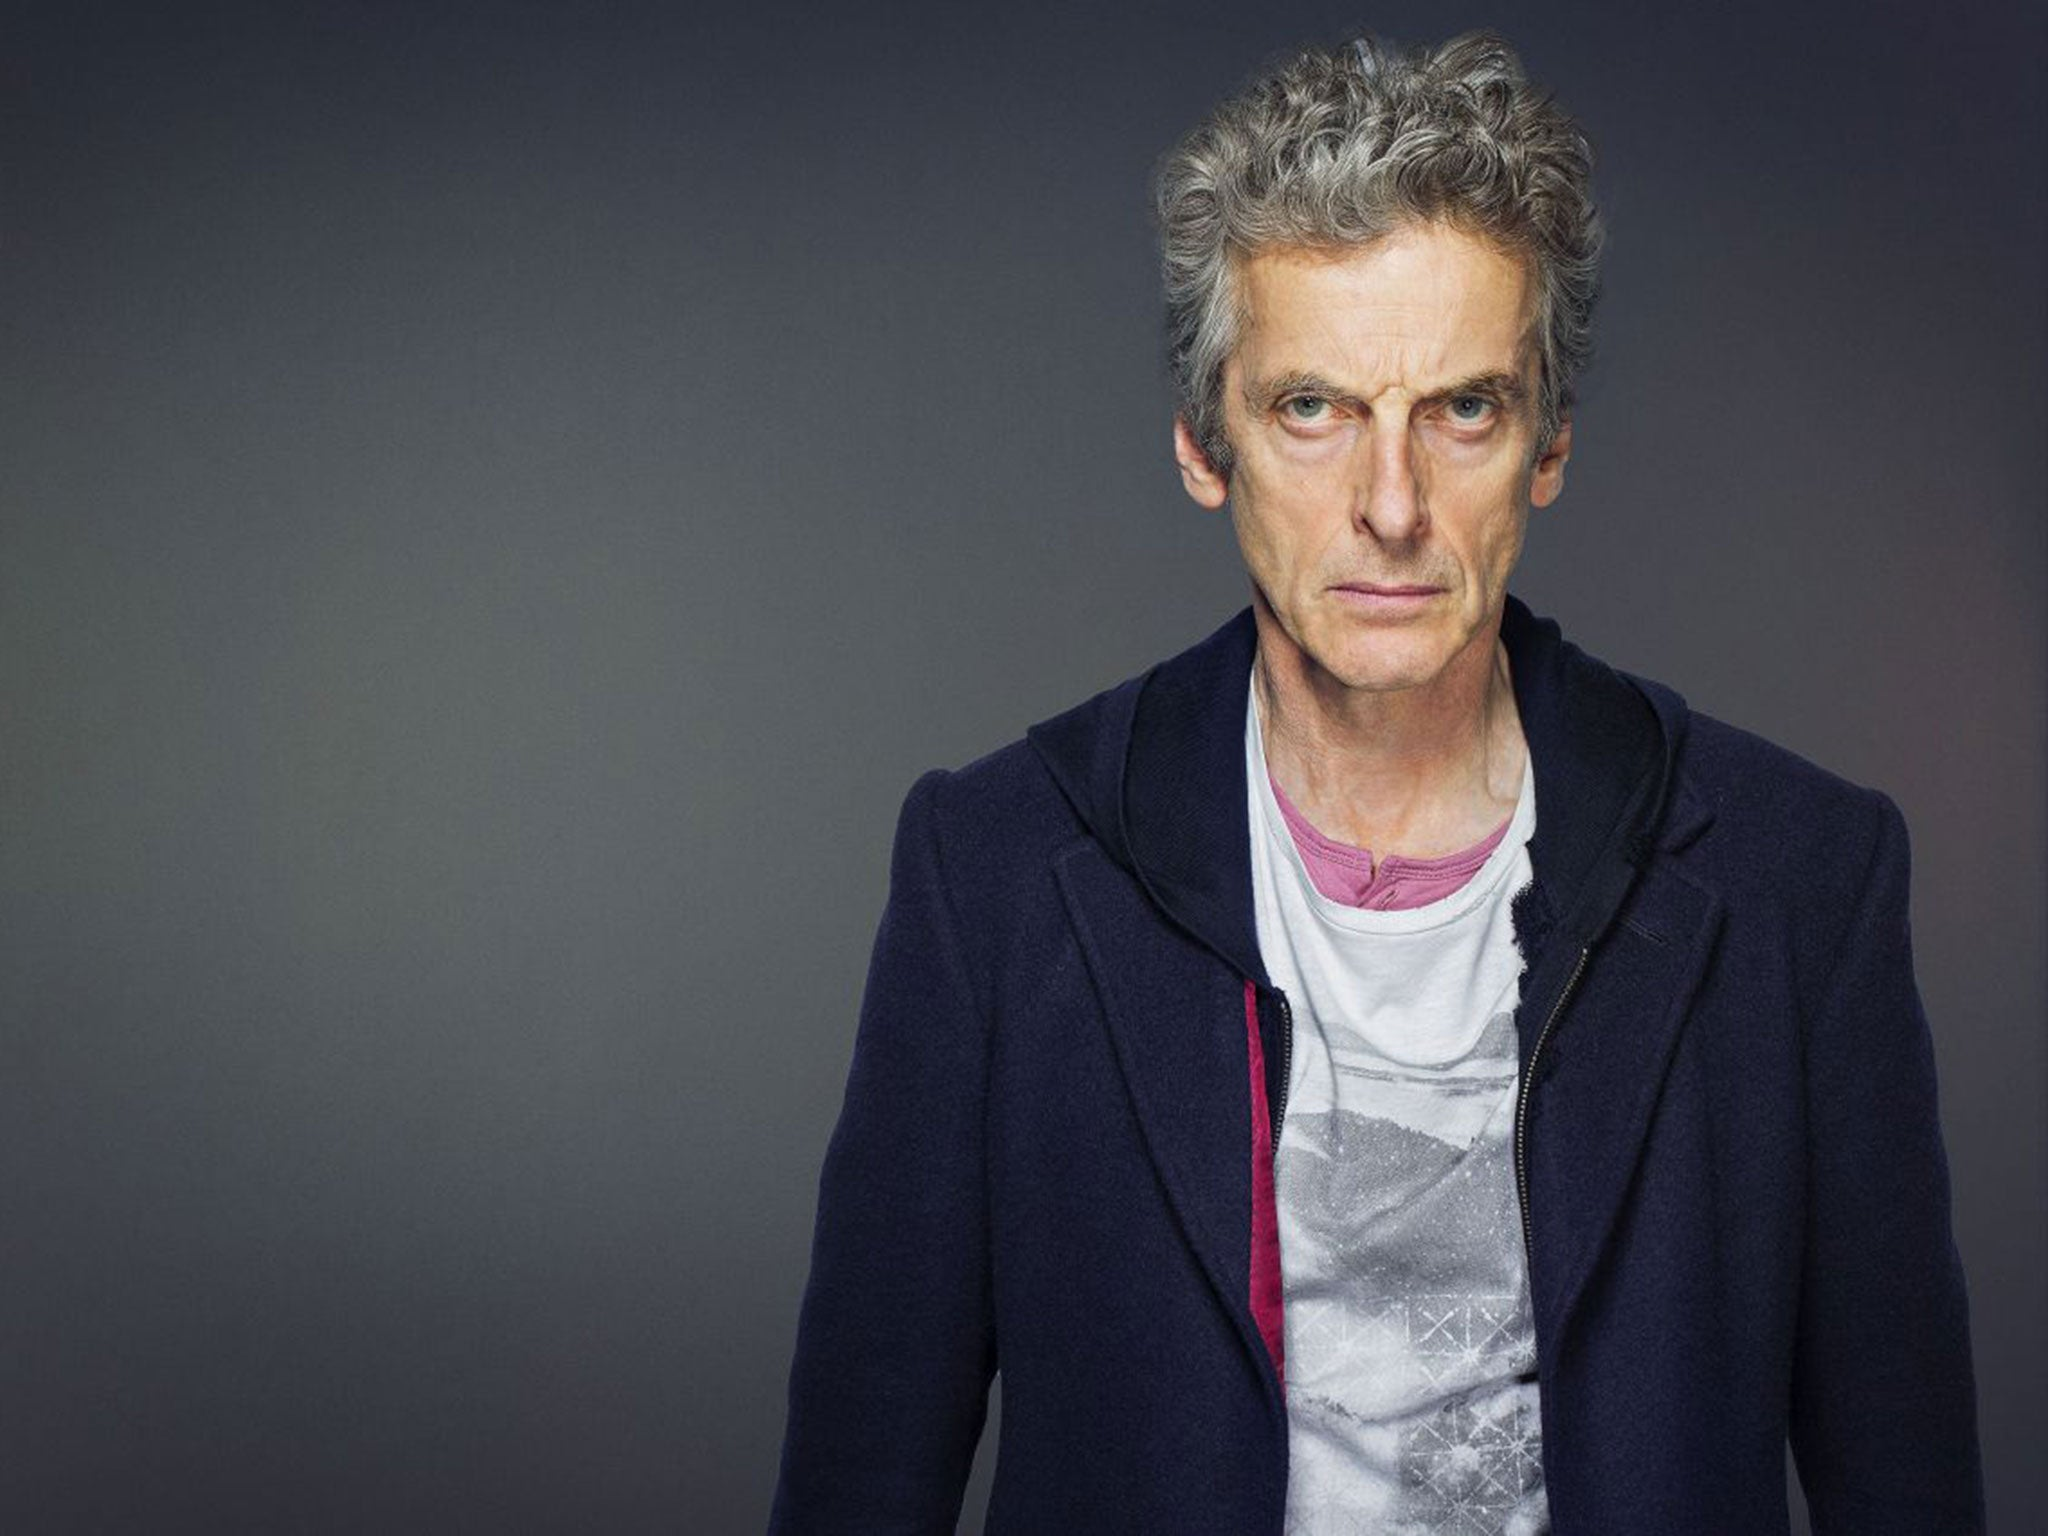 The personal life of Peter Capaldi 42